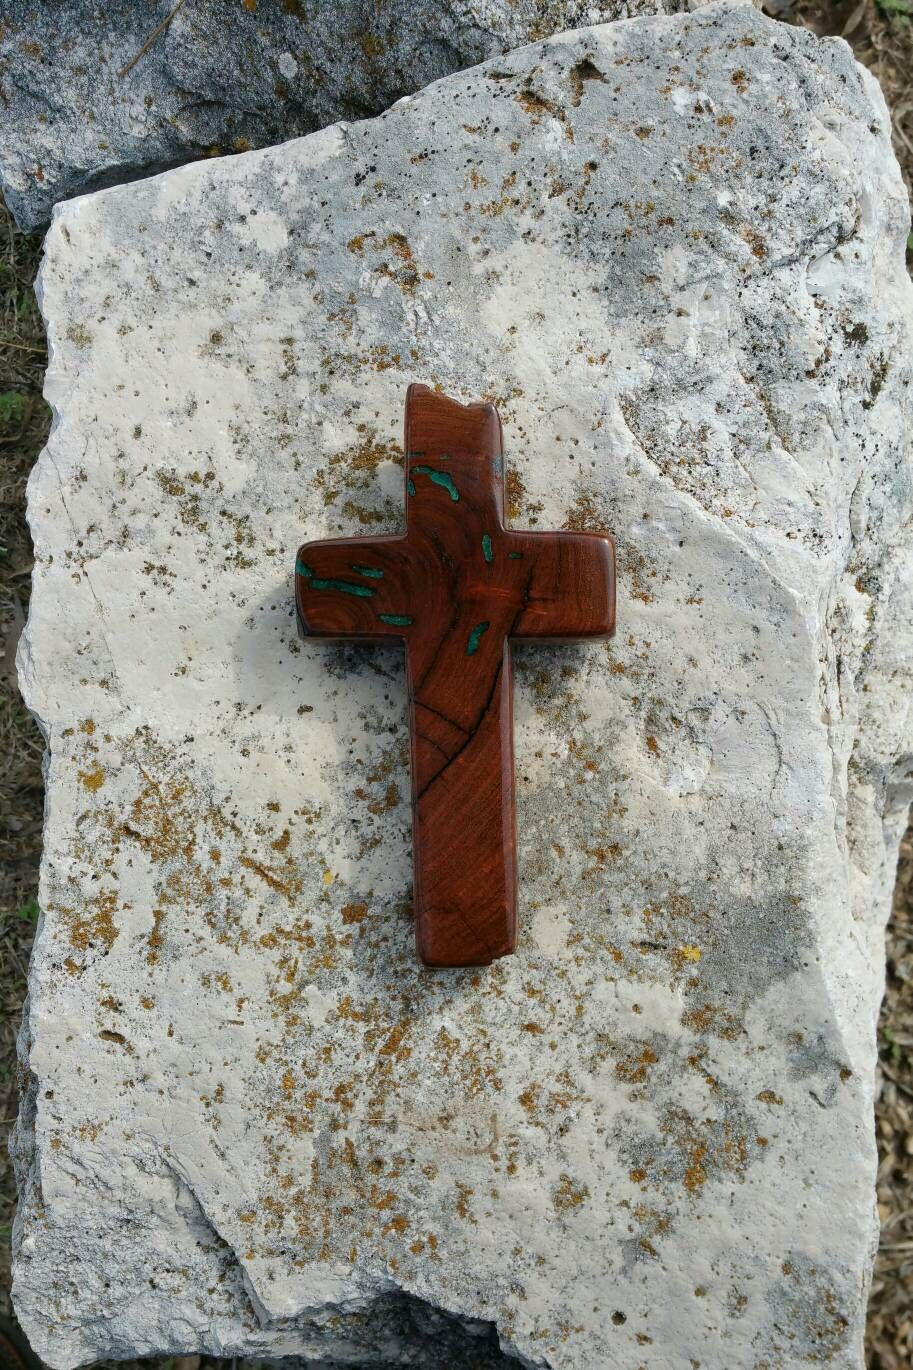 Inlaid ooak handmade wood cross made from texas honey mesquite inlaid ooak handmade wood cross made from texas honey mesquite burl green sand inlay amipublicfo Gallery